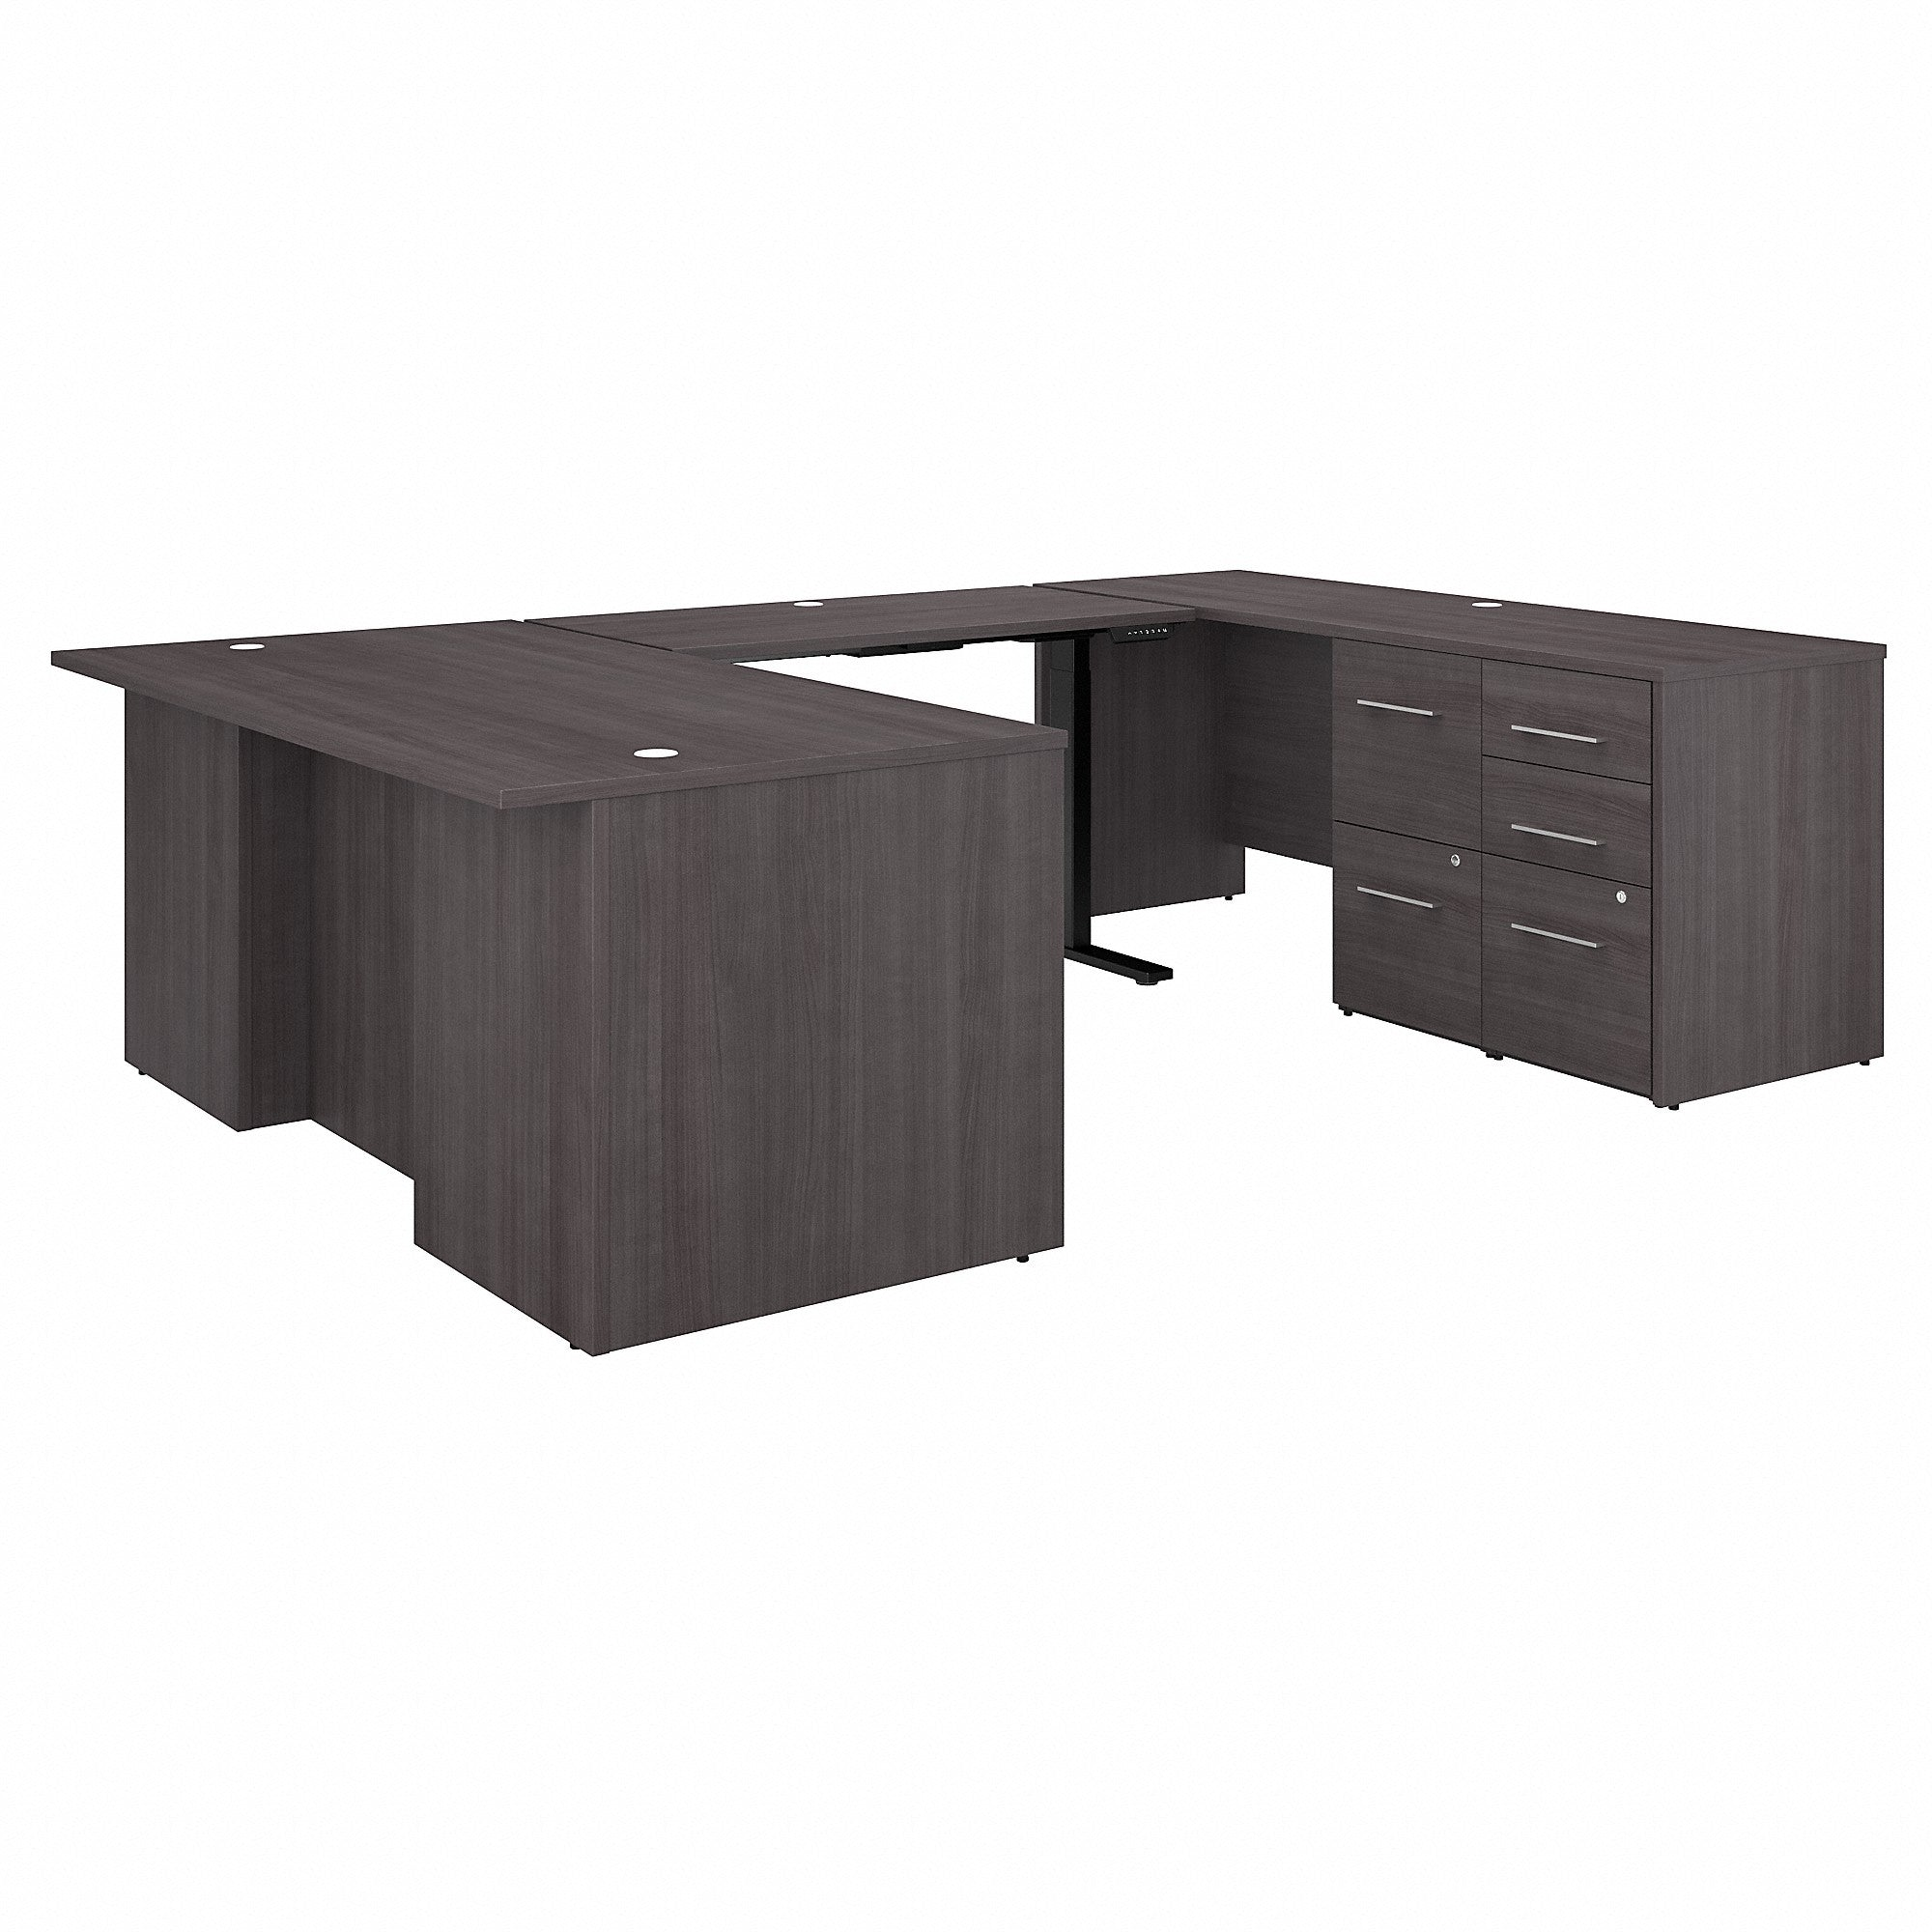 Bush Business Furniture Office 500 72W Height Adjustable U Shaped Executive Desk with Drawers | Storm Gray